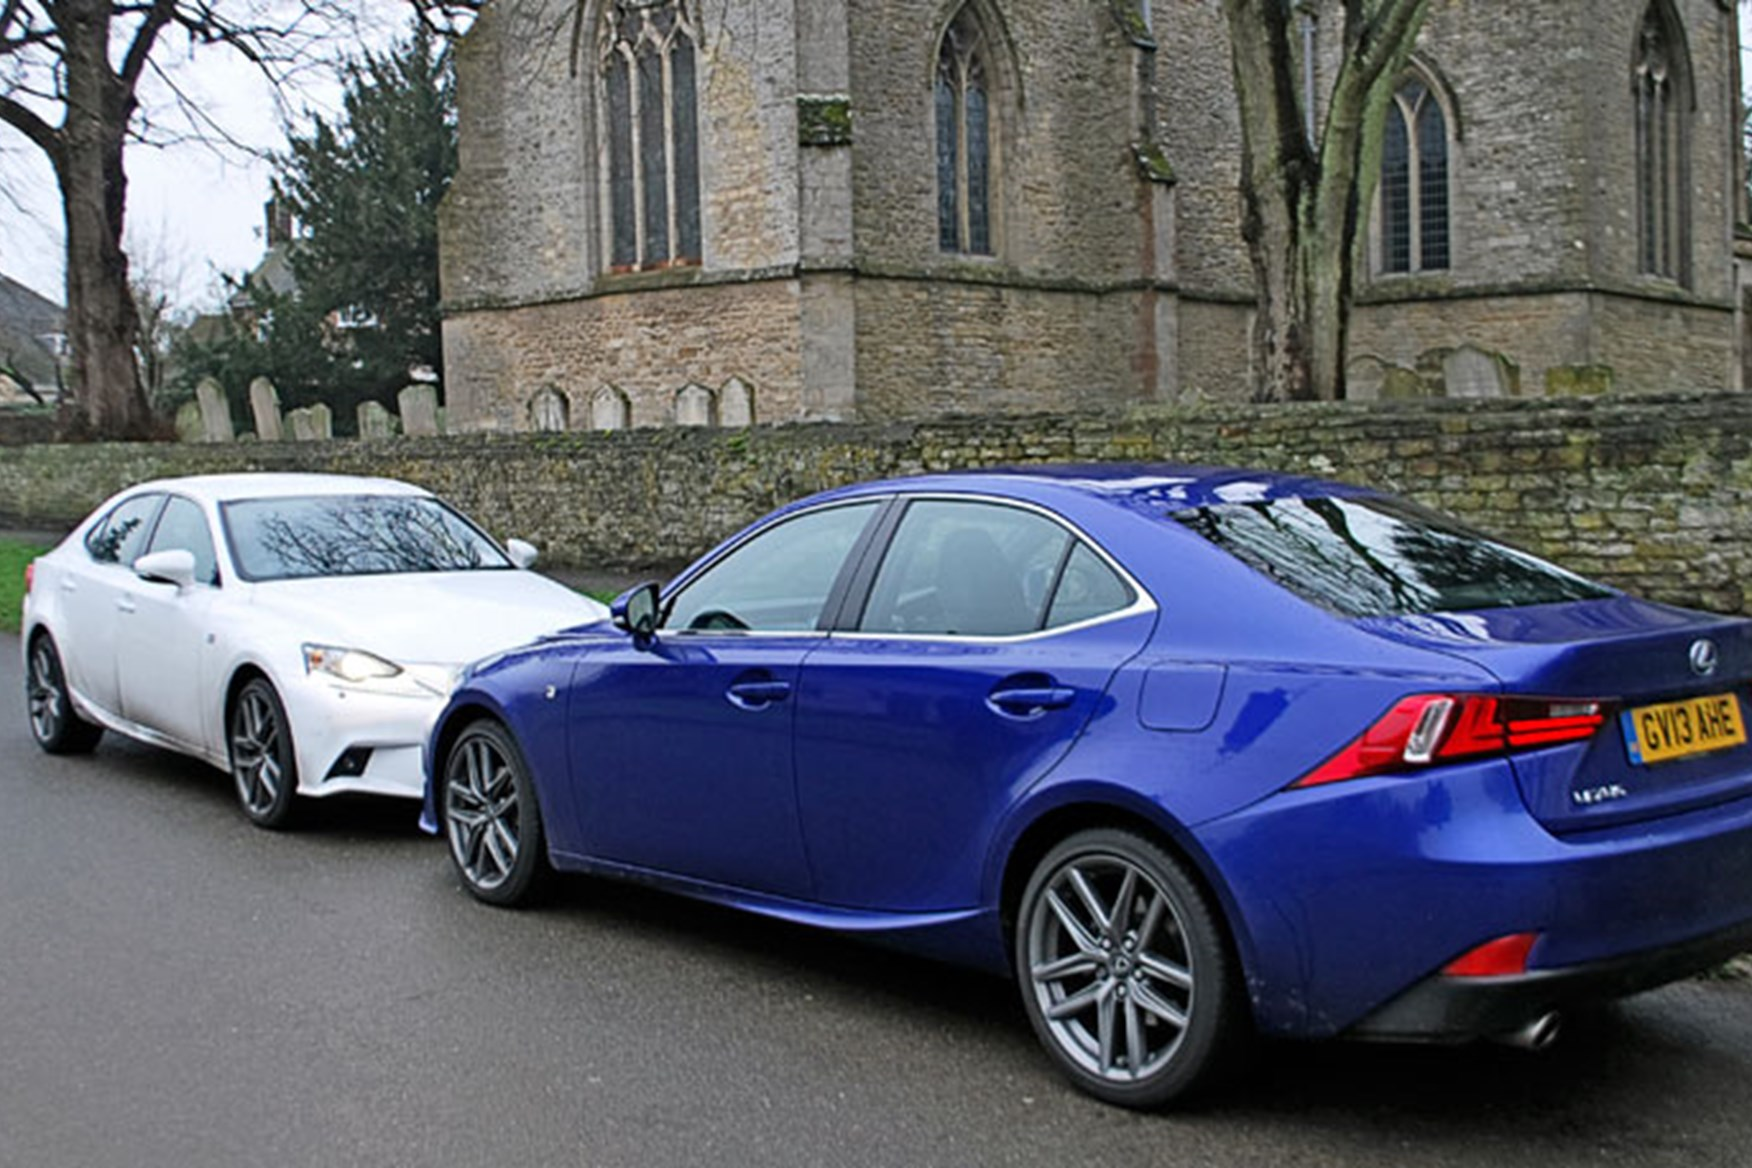 Elegant ... Time To Introduce Our Lexus IS300h To Its Petrol Counterpart, The IS250  (blue Car) ...